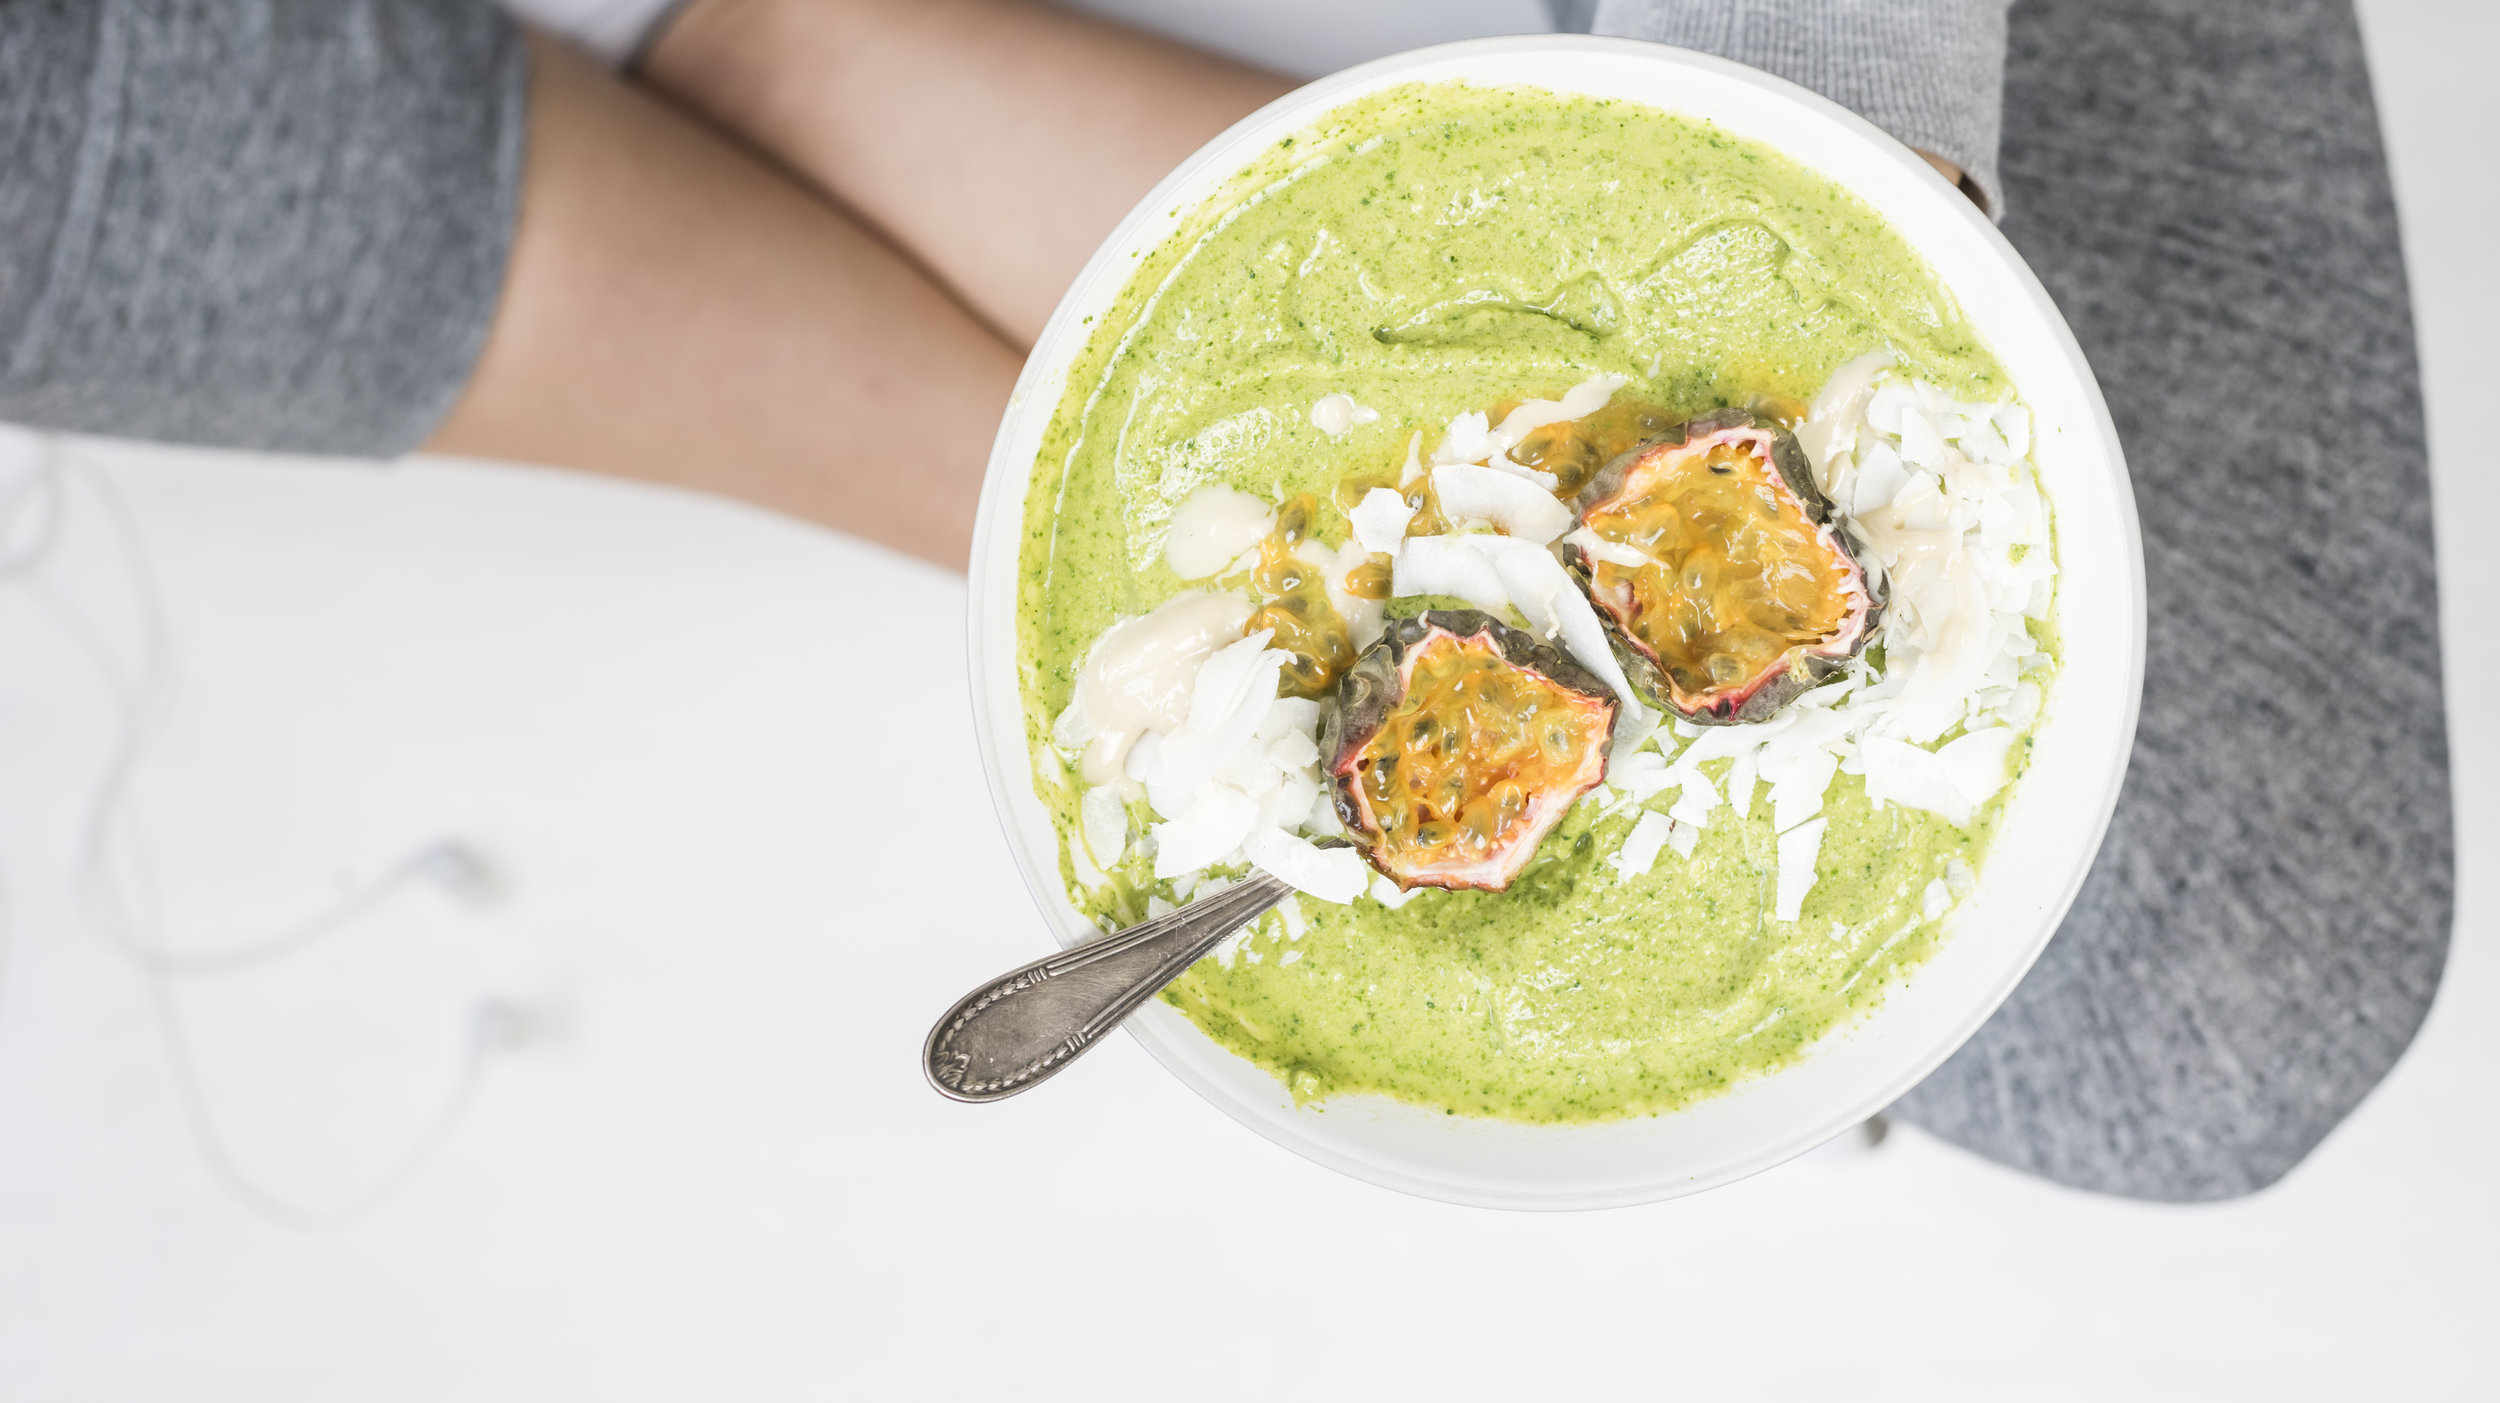 A smoothie bowl often as 'extras' on top. Eating it with a spoon can help you feel full.